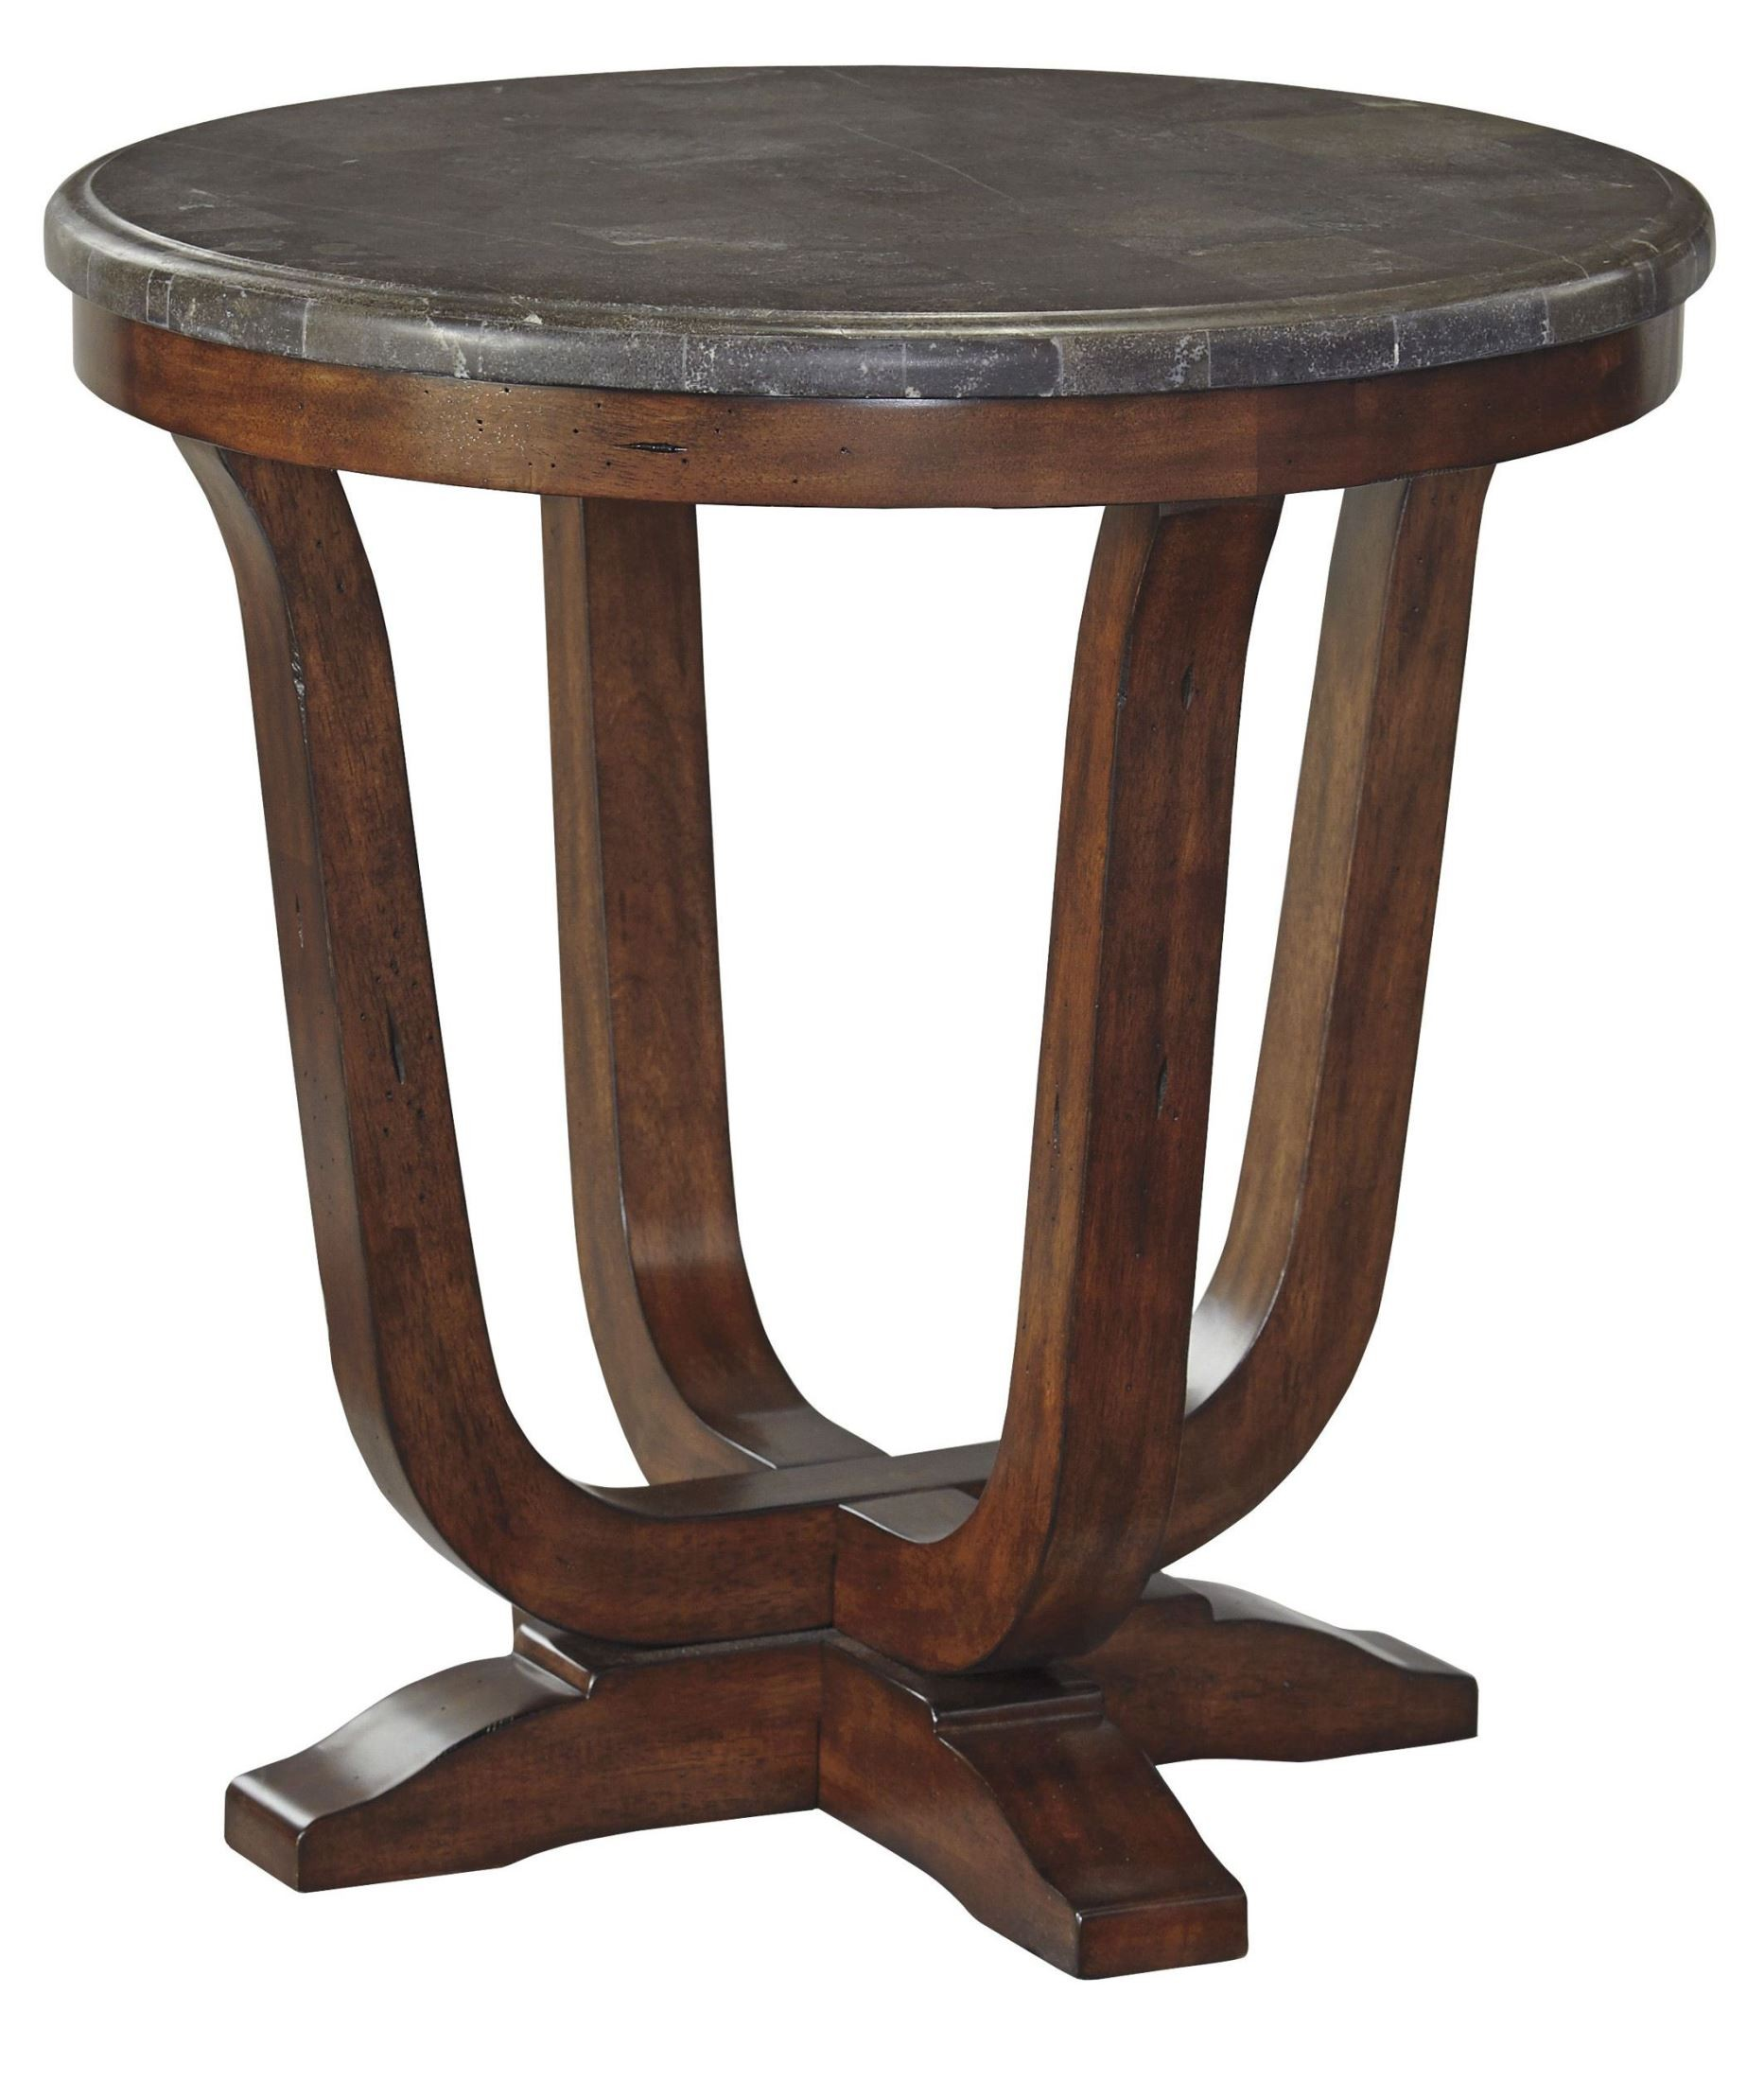 Balinder medium brown round end table from ashley t908 6 for Round end tables